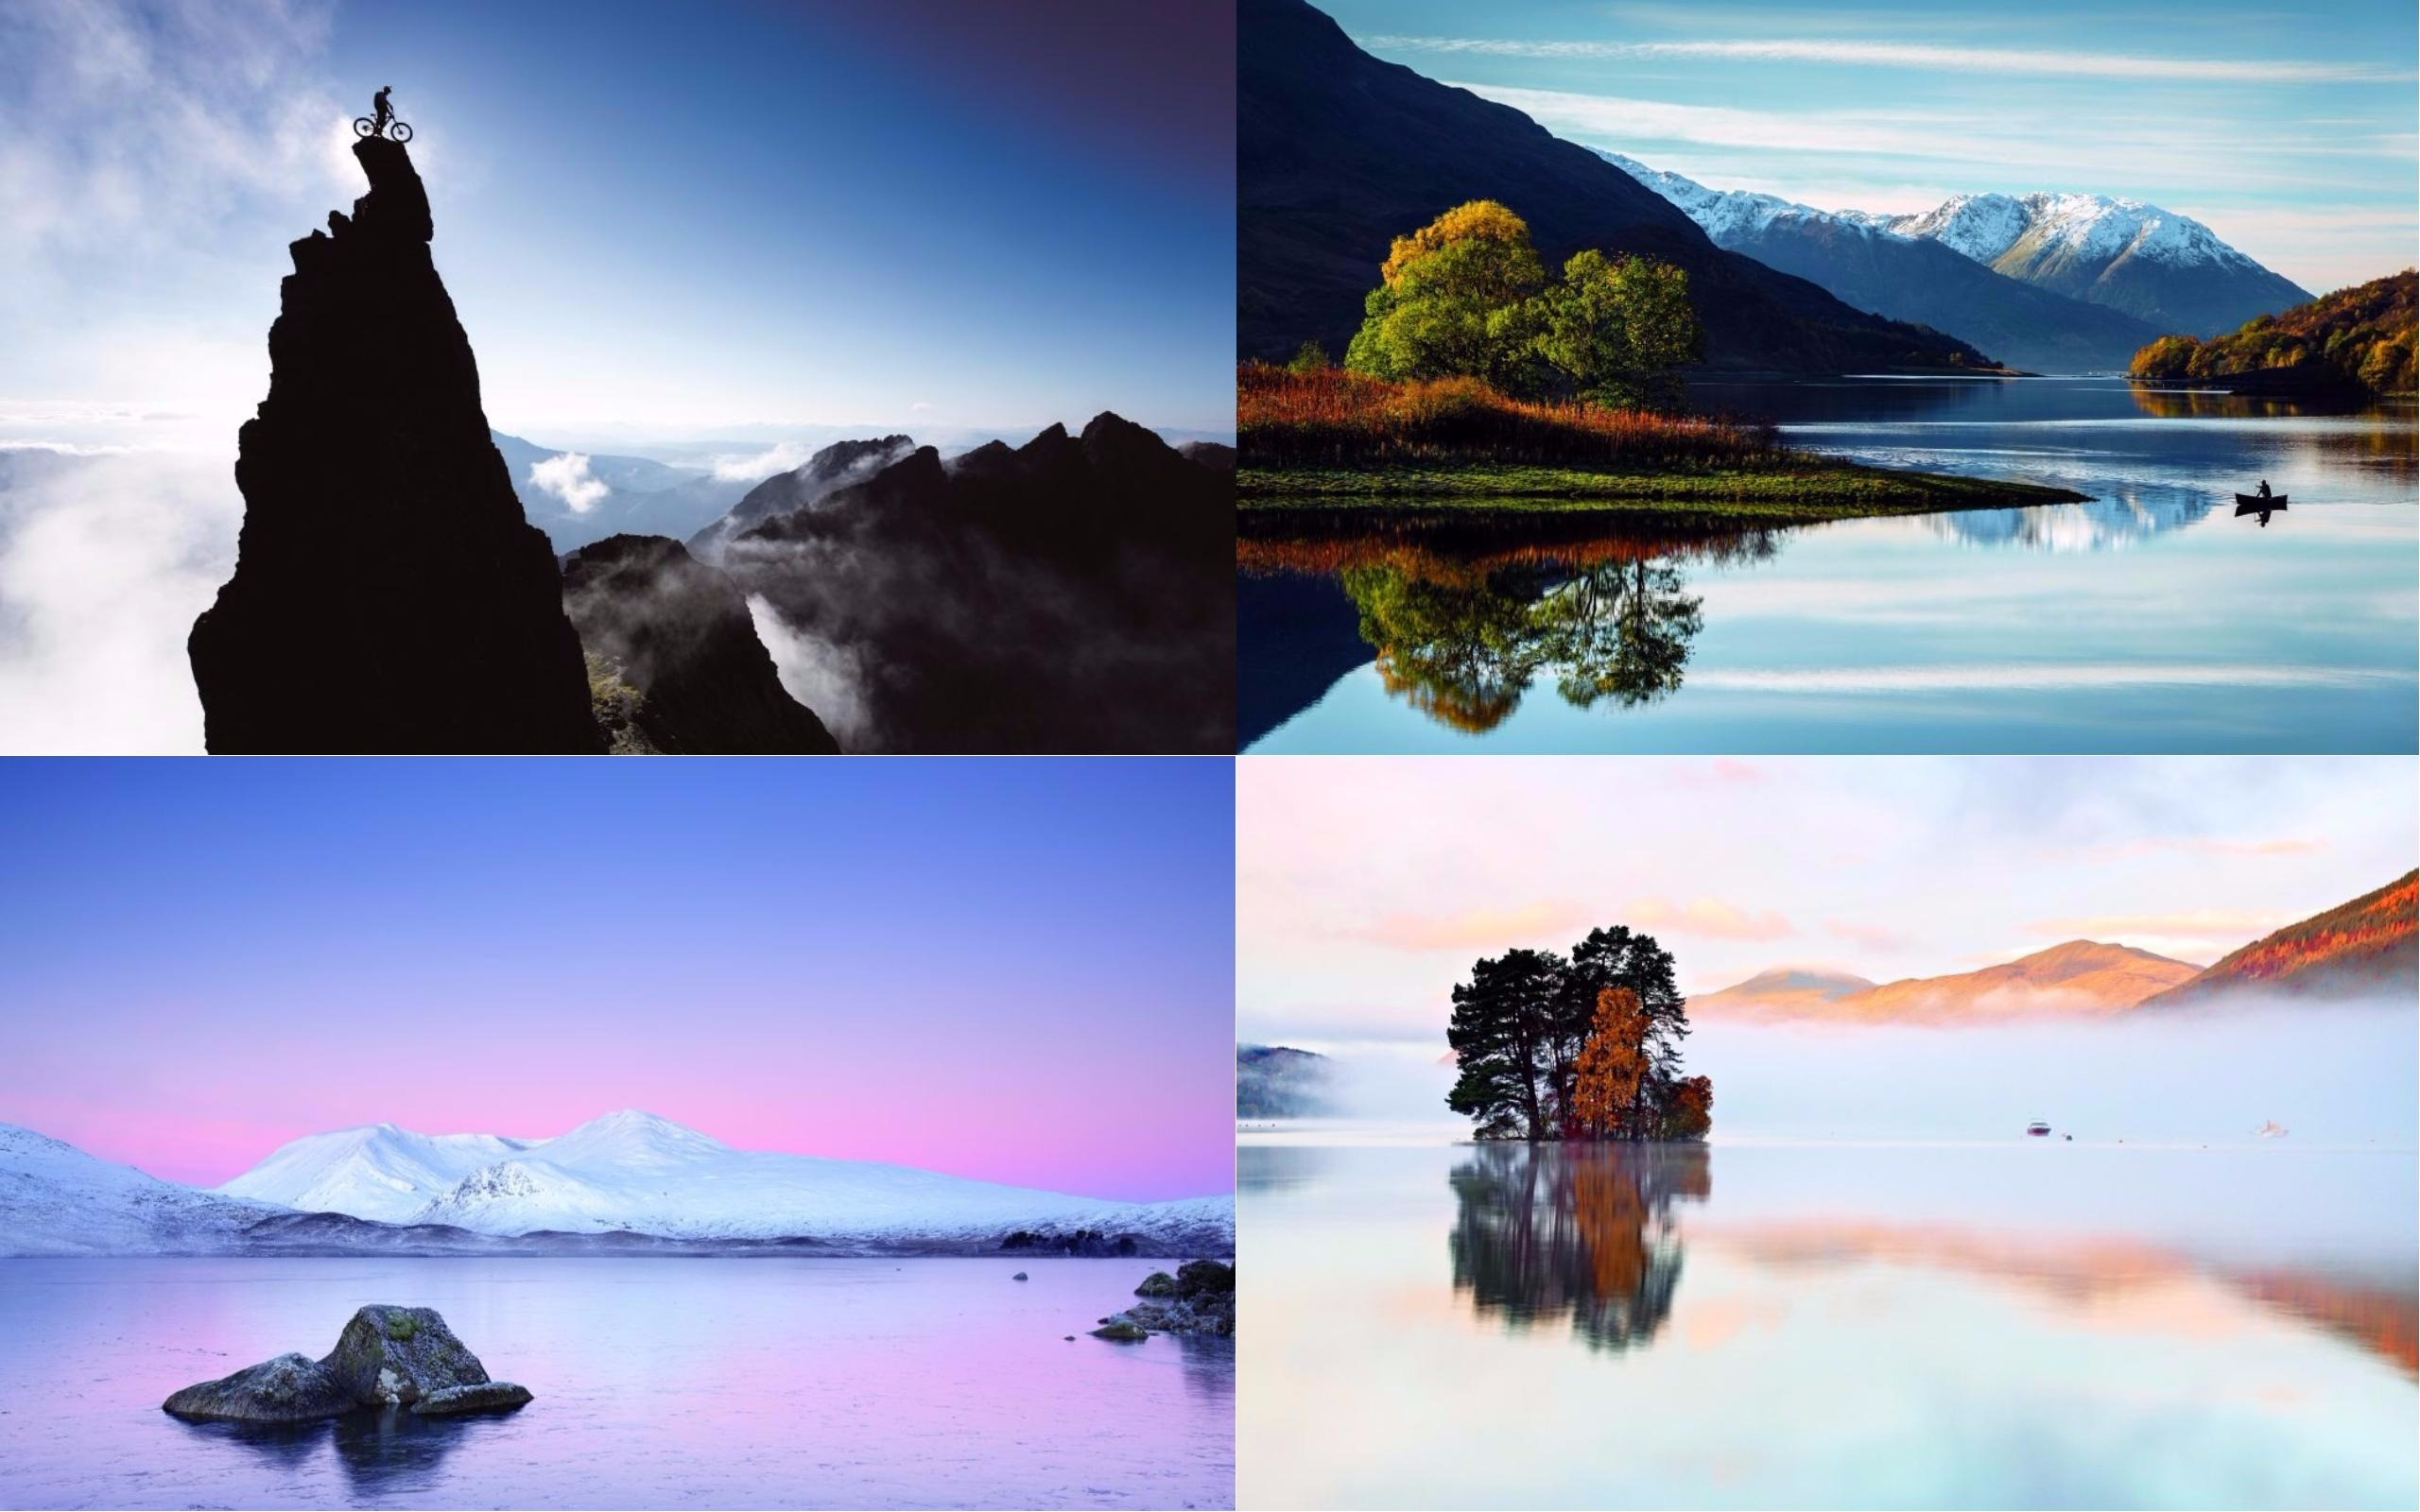 Landscape Photographer of the Year - from top left pics by Chris Prescott, Dave Bowman, Paul Sutton and Peter Ribbeck